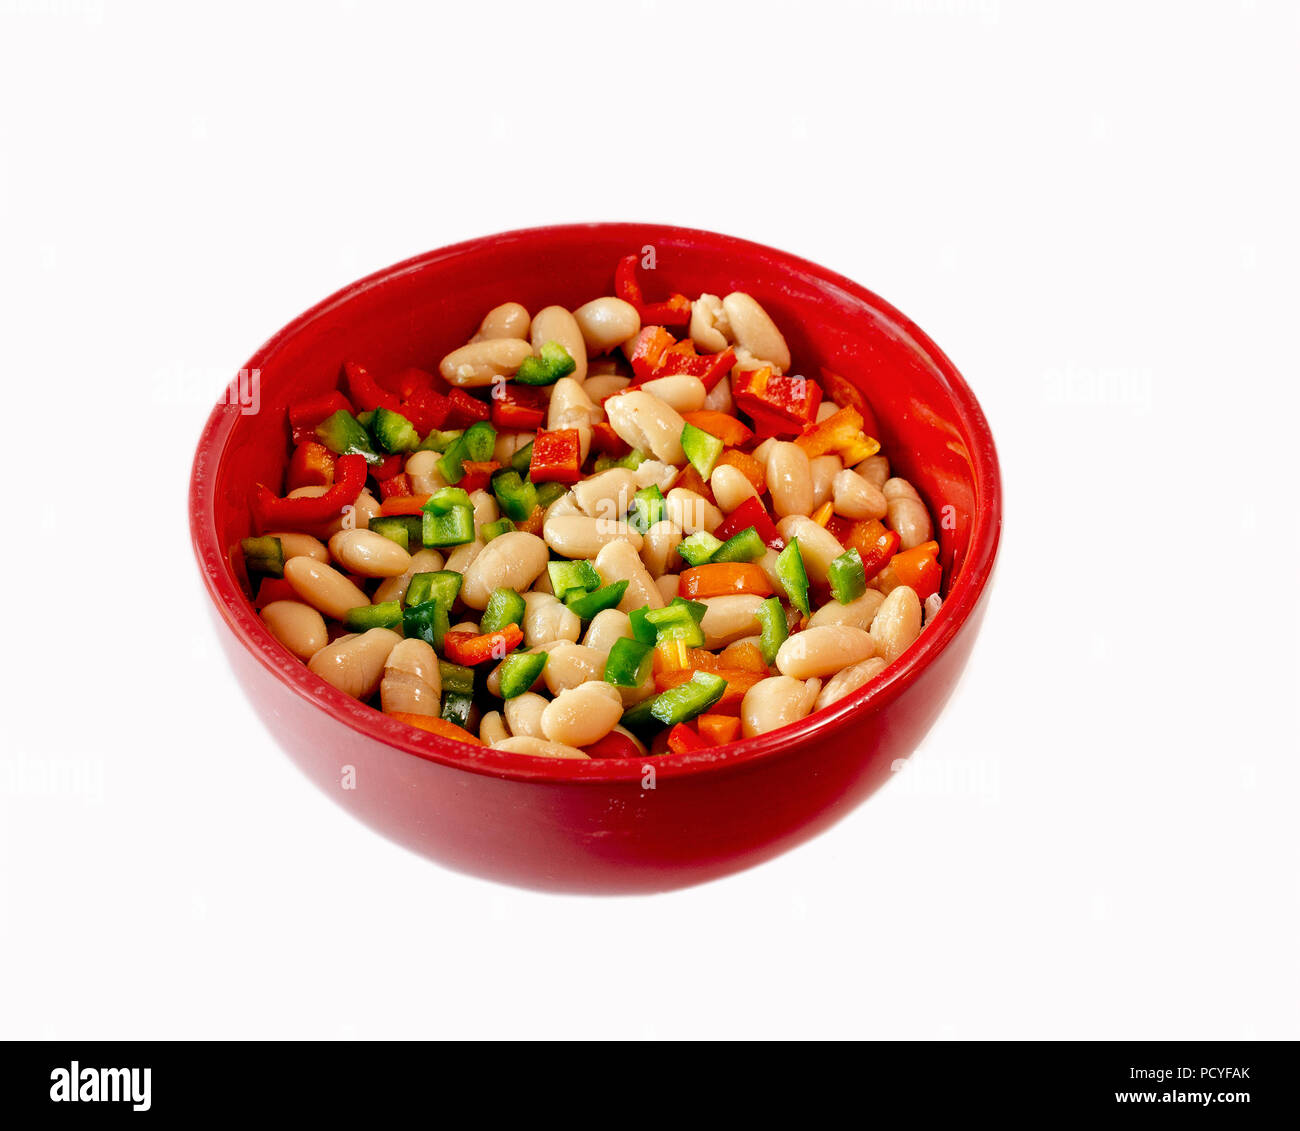 Navy Beans with red, green and orange bell peppers in red bowl isolated on white background -healthy food concept - Stock Image